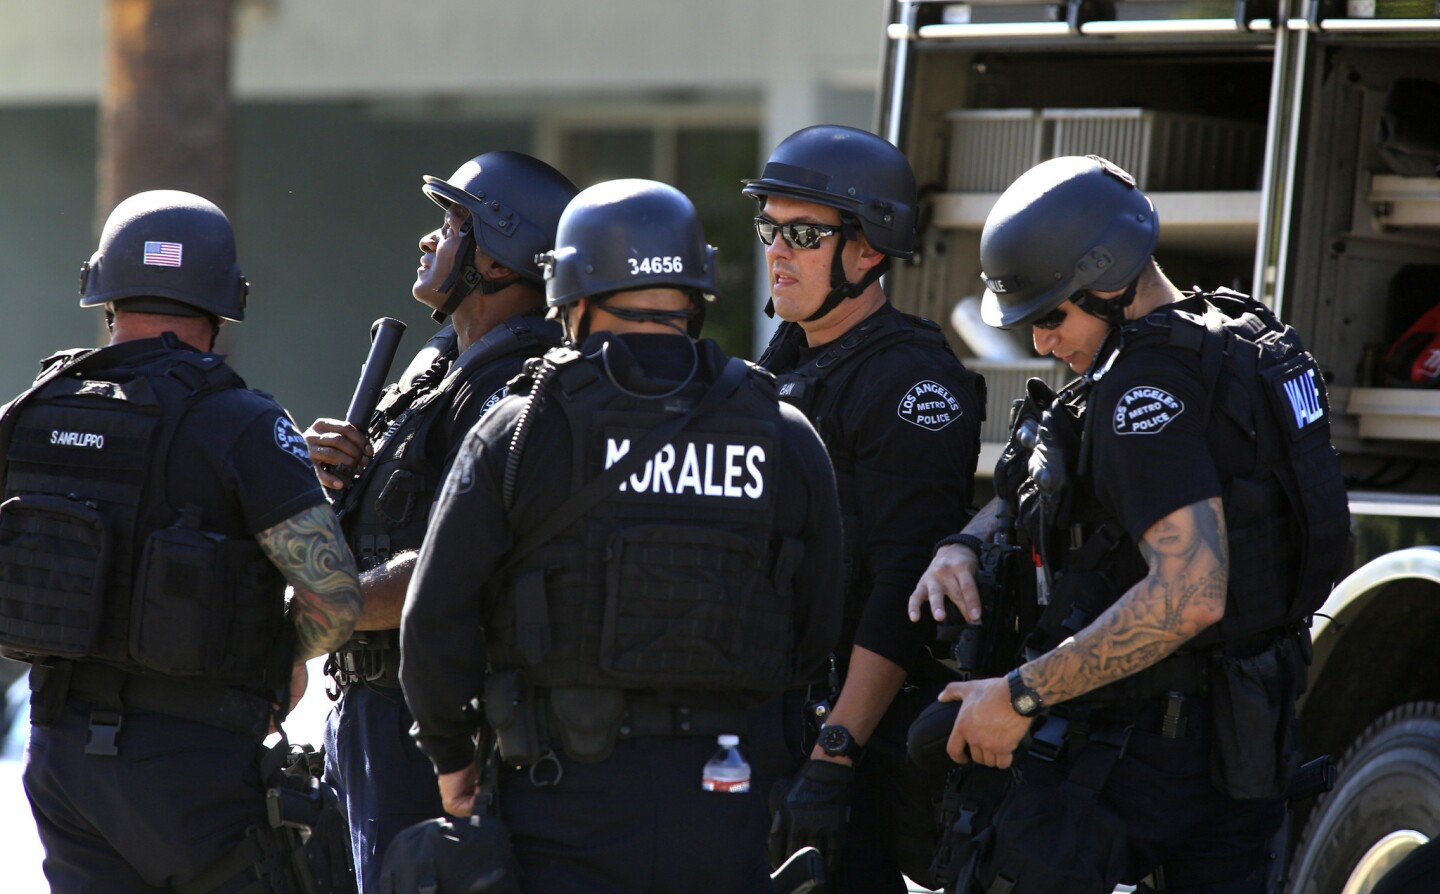 A gunman opened fire Friday afternoon in Studio City, prompting a massive police response. People sheltered in place in businesses as the investigation continued. Laurel Canyon and Ventura boulevards are closed.